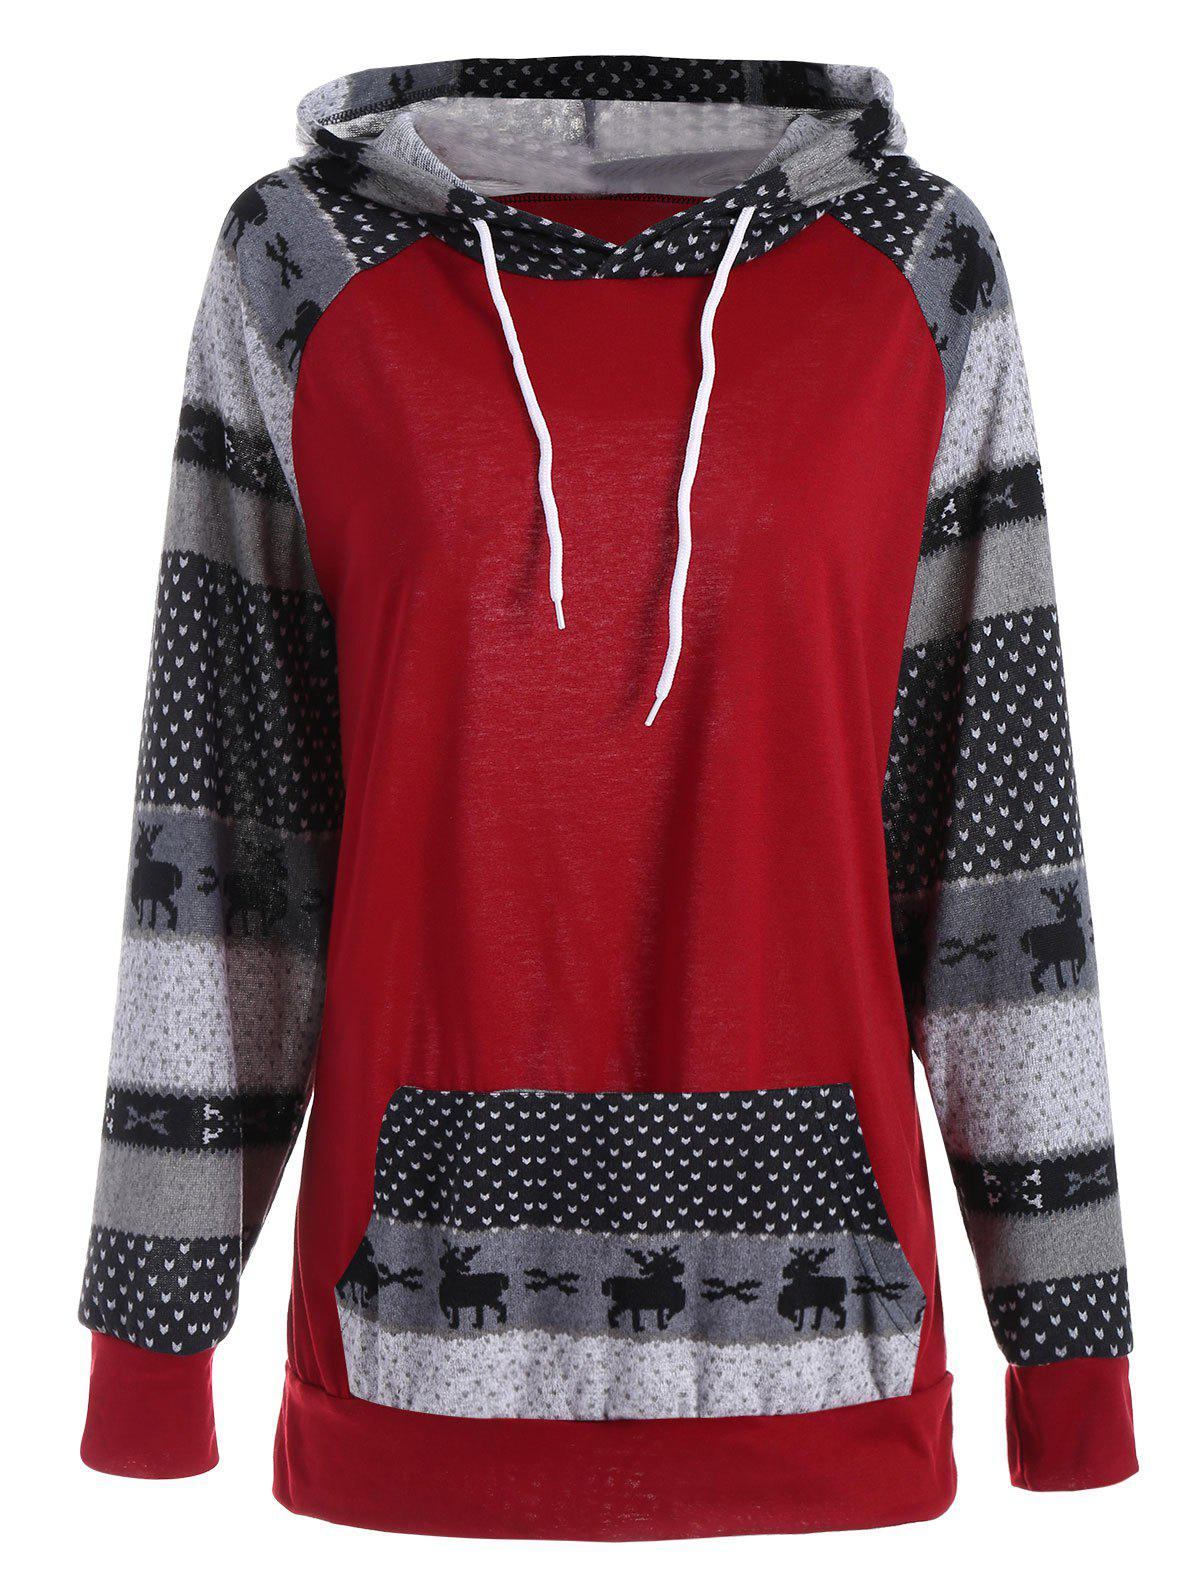 Plus Size Pocket Christmas Deer Raglan Sleeve HoodieWOMEN<br><br>Size: 3XL; Color: RED; Material: Cotton Blend,Polyester; Shirt Length: Long; Sleeve Length: Full; Style: Casual; Pattern Style: Patchwork; Embellishment: Panel; Season: Fall,Winter; Weight: 0.3500kg; Package Contents: 1 x Hoodie;